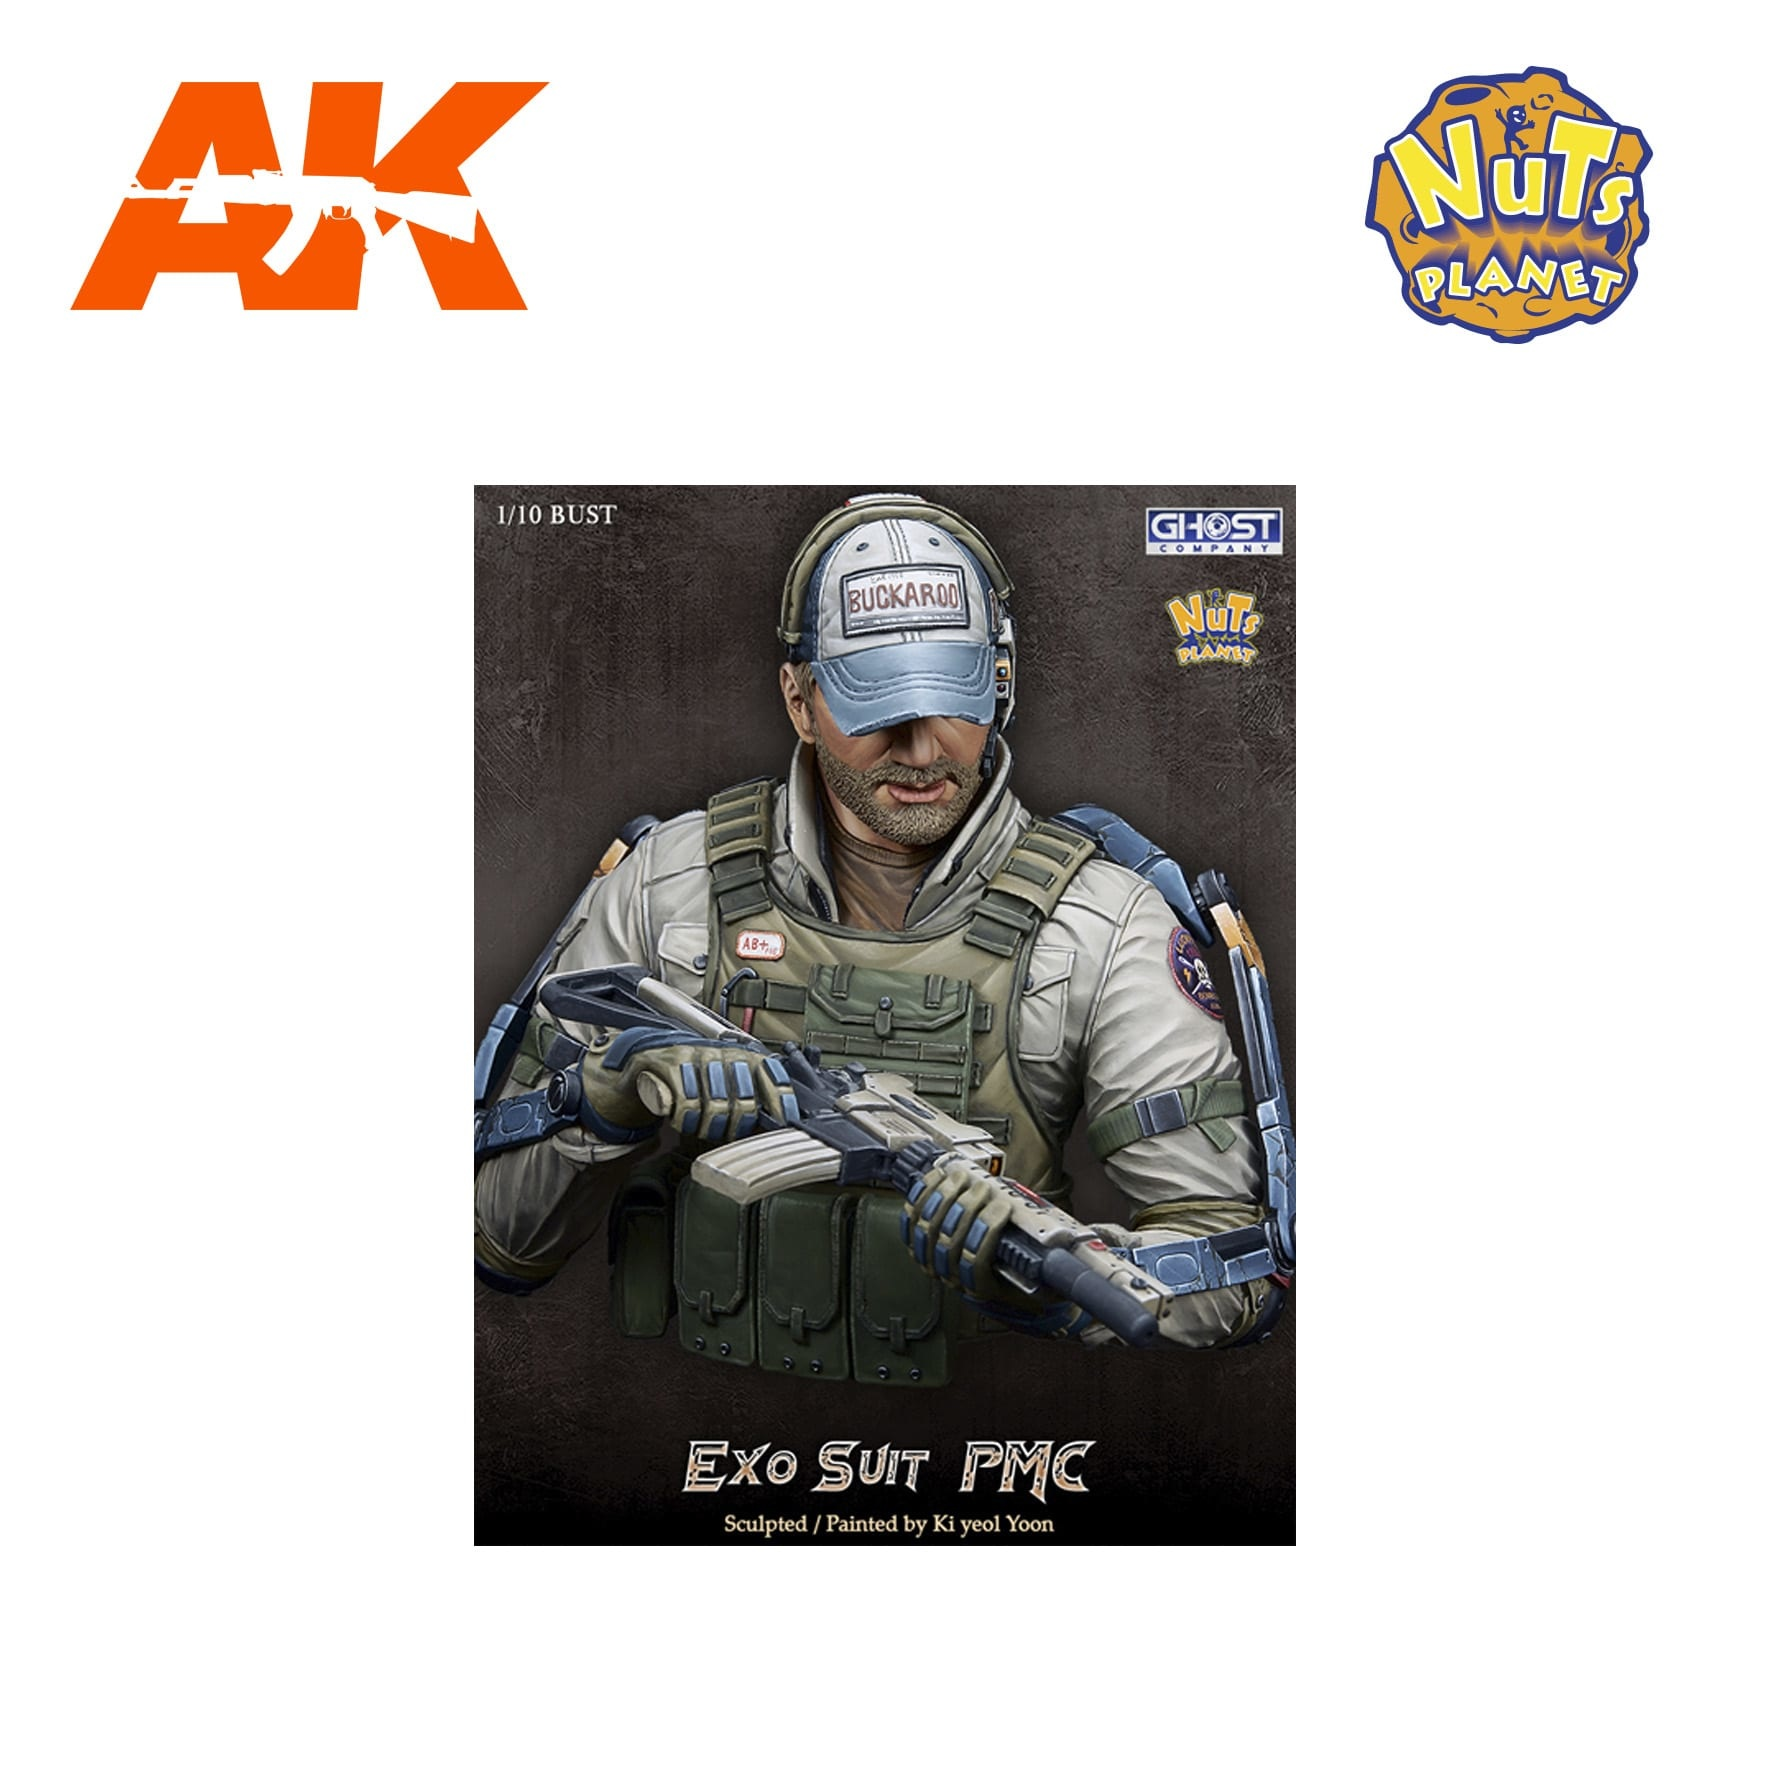 Nuts Planet Exo Suit Pmc -Scale 1/10 - Nuts Planet - NUT-GC-B002